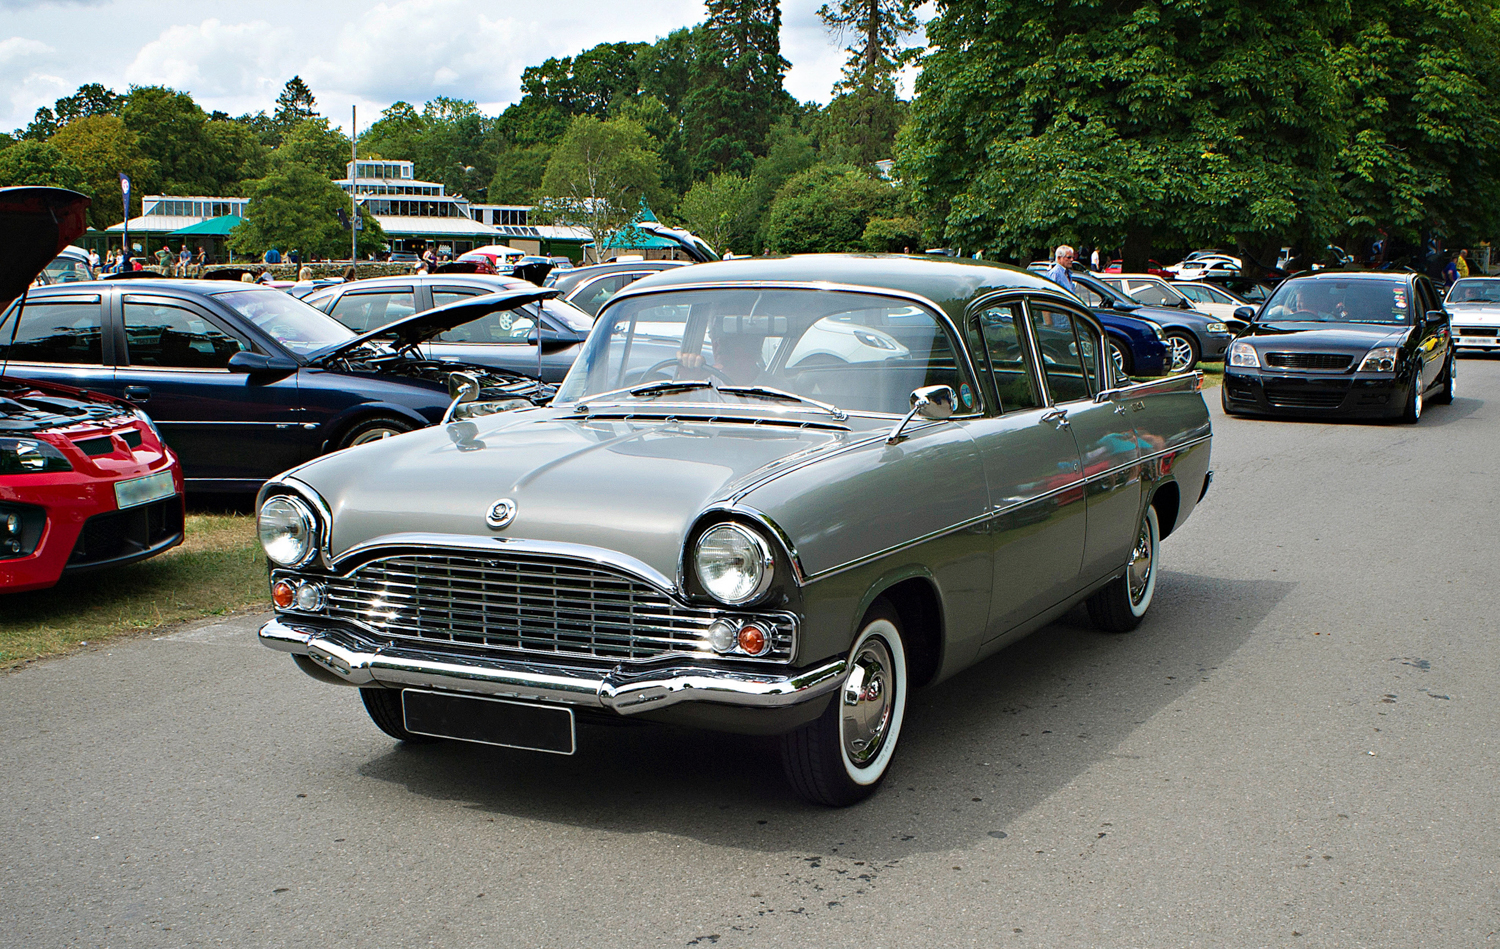 Pic by Samantha Cook Photography 270714. Simply Vauxhall, Beaulieu National Motor Museum. Samantha Cook Photography